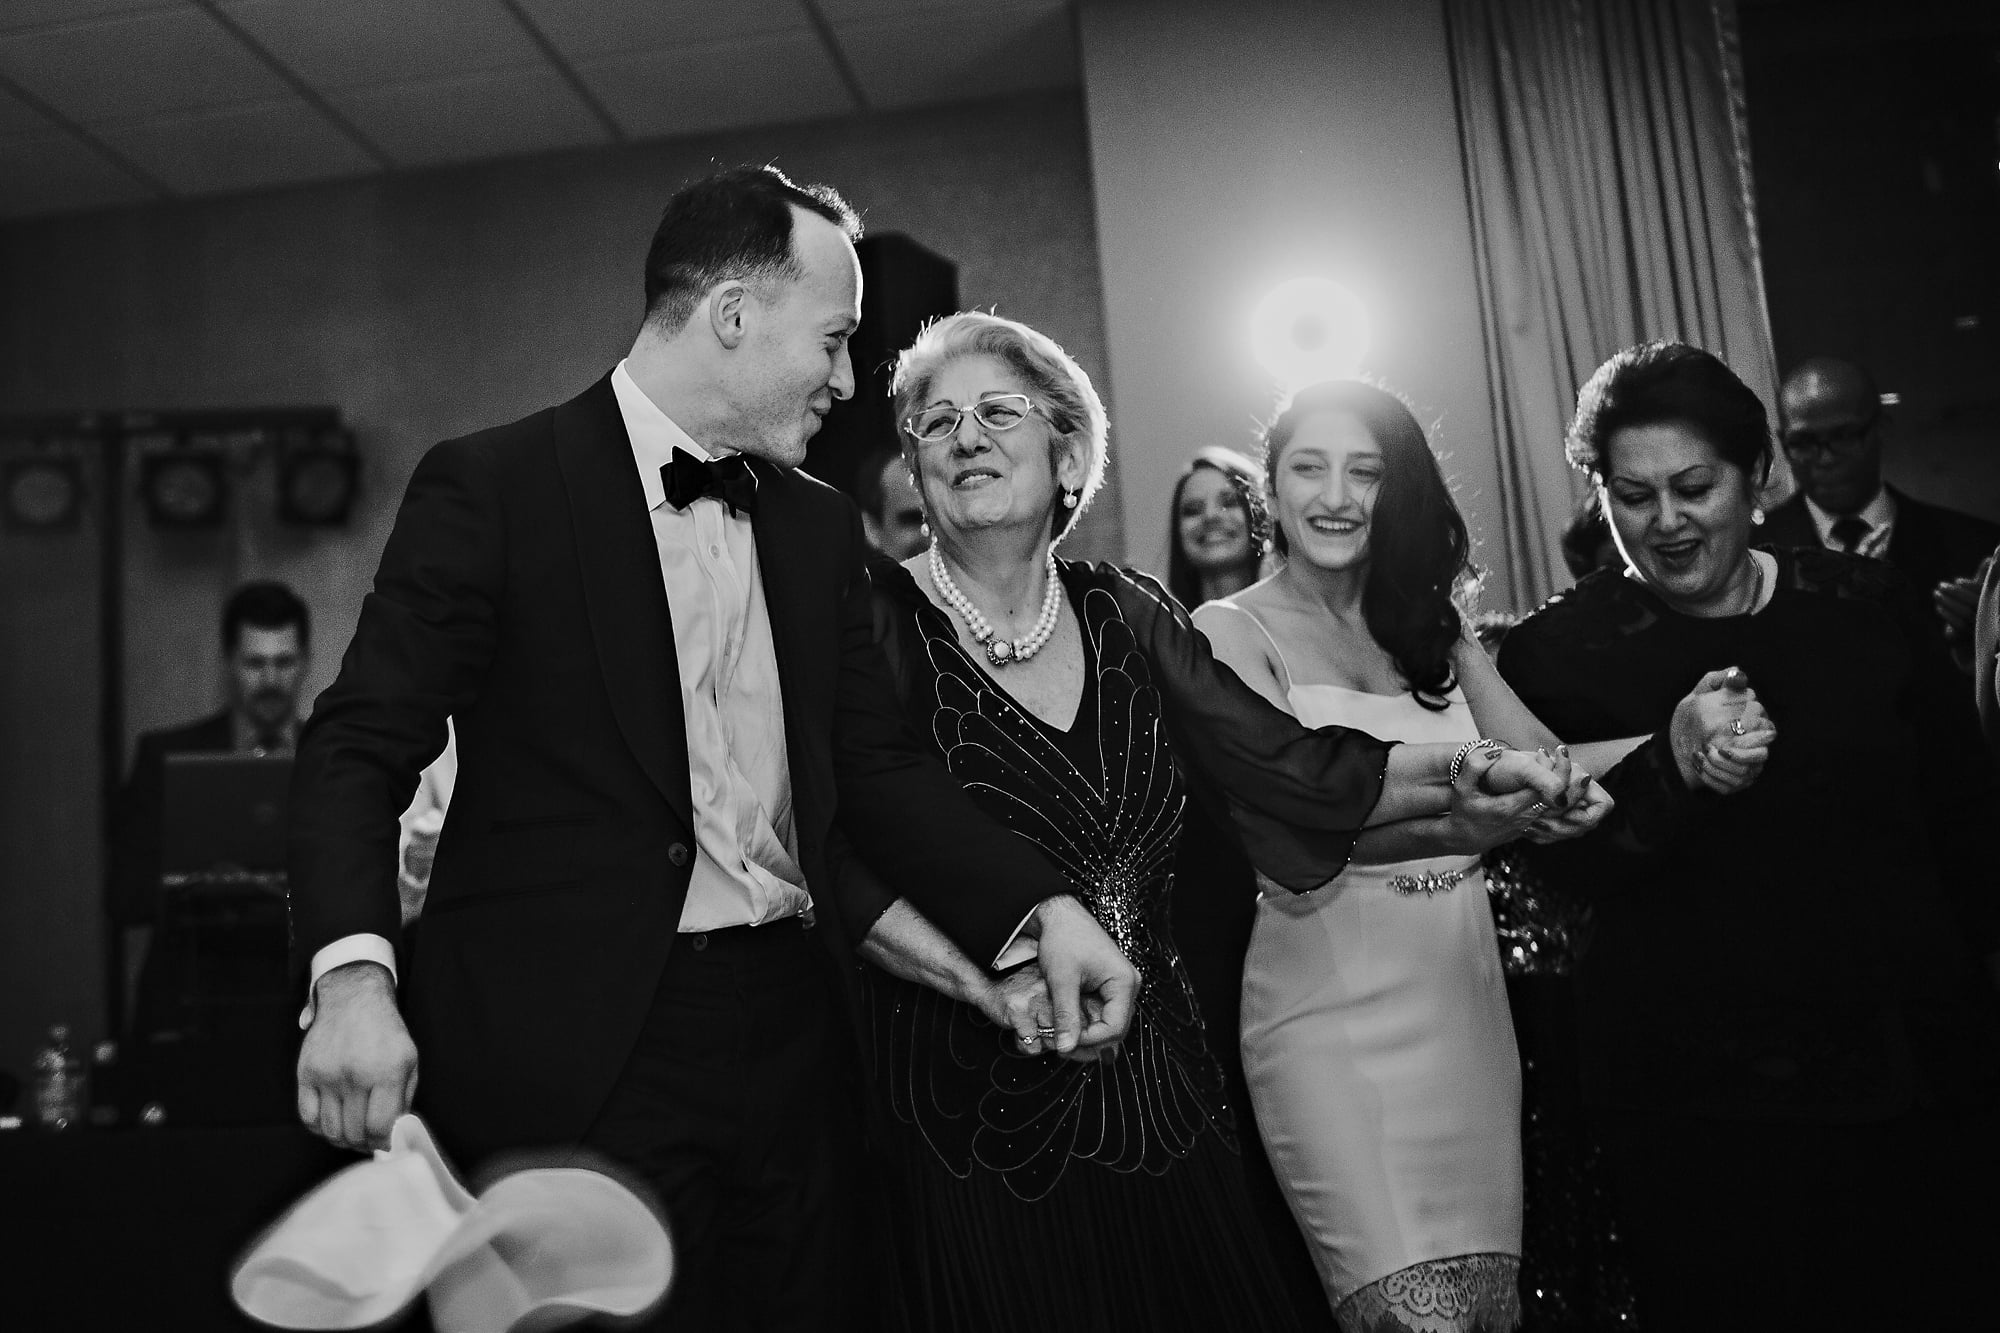 rachel gulotta photography Chicago Wedding-68.jpg